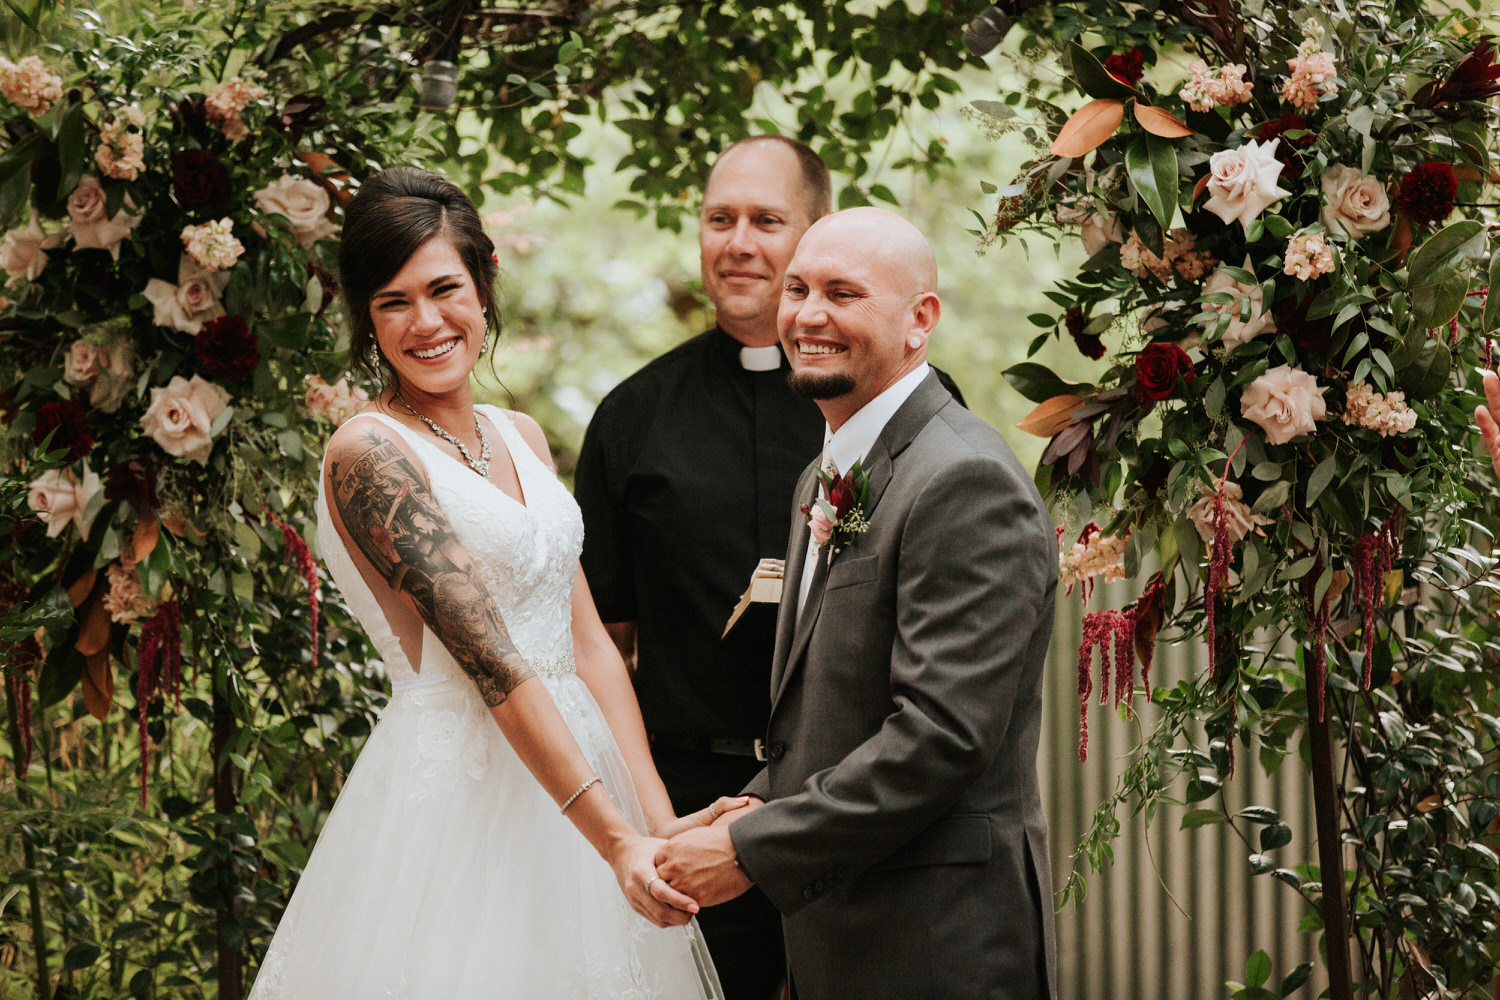 Couple getting married at The Sanctuary wedding